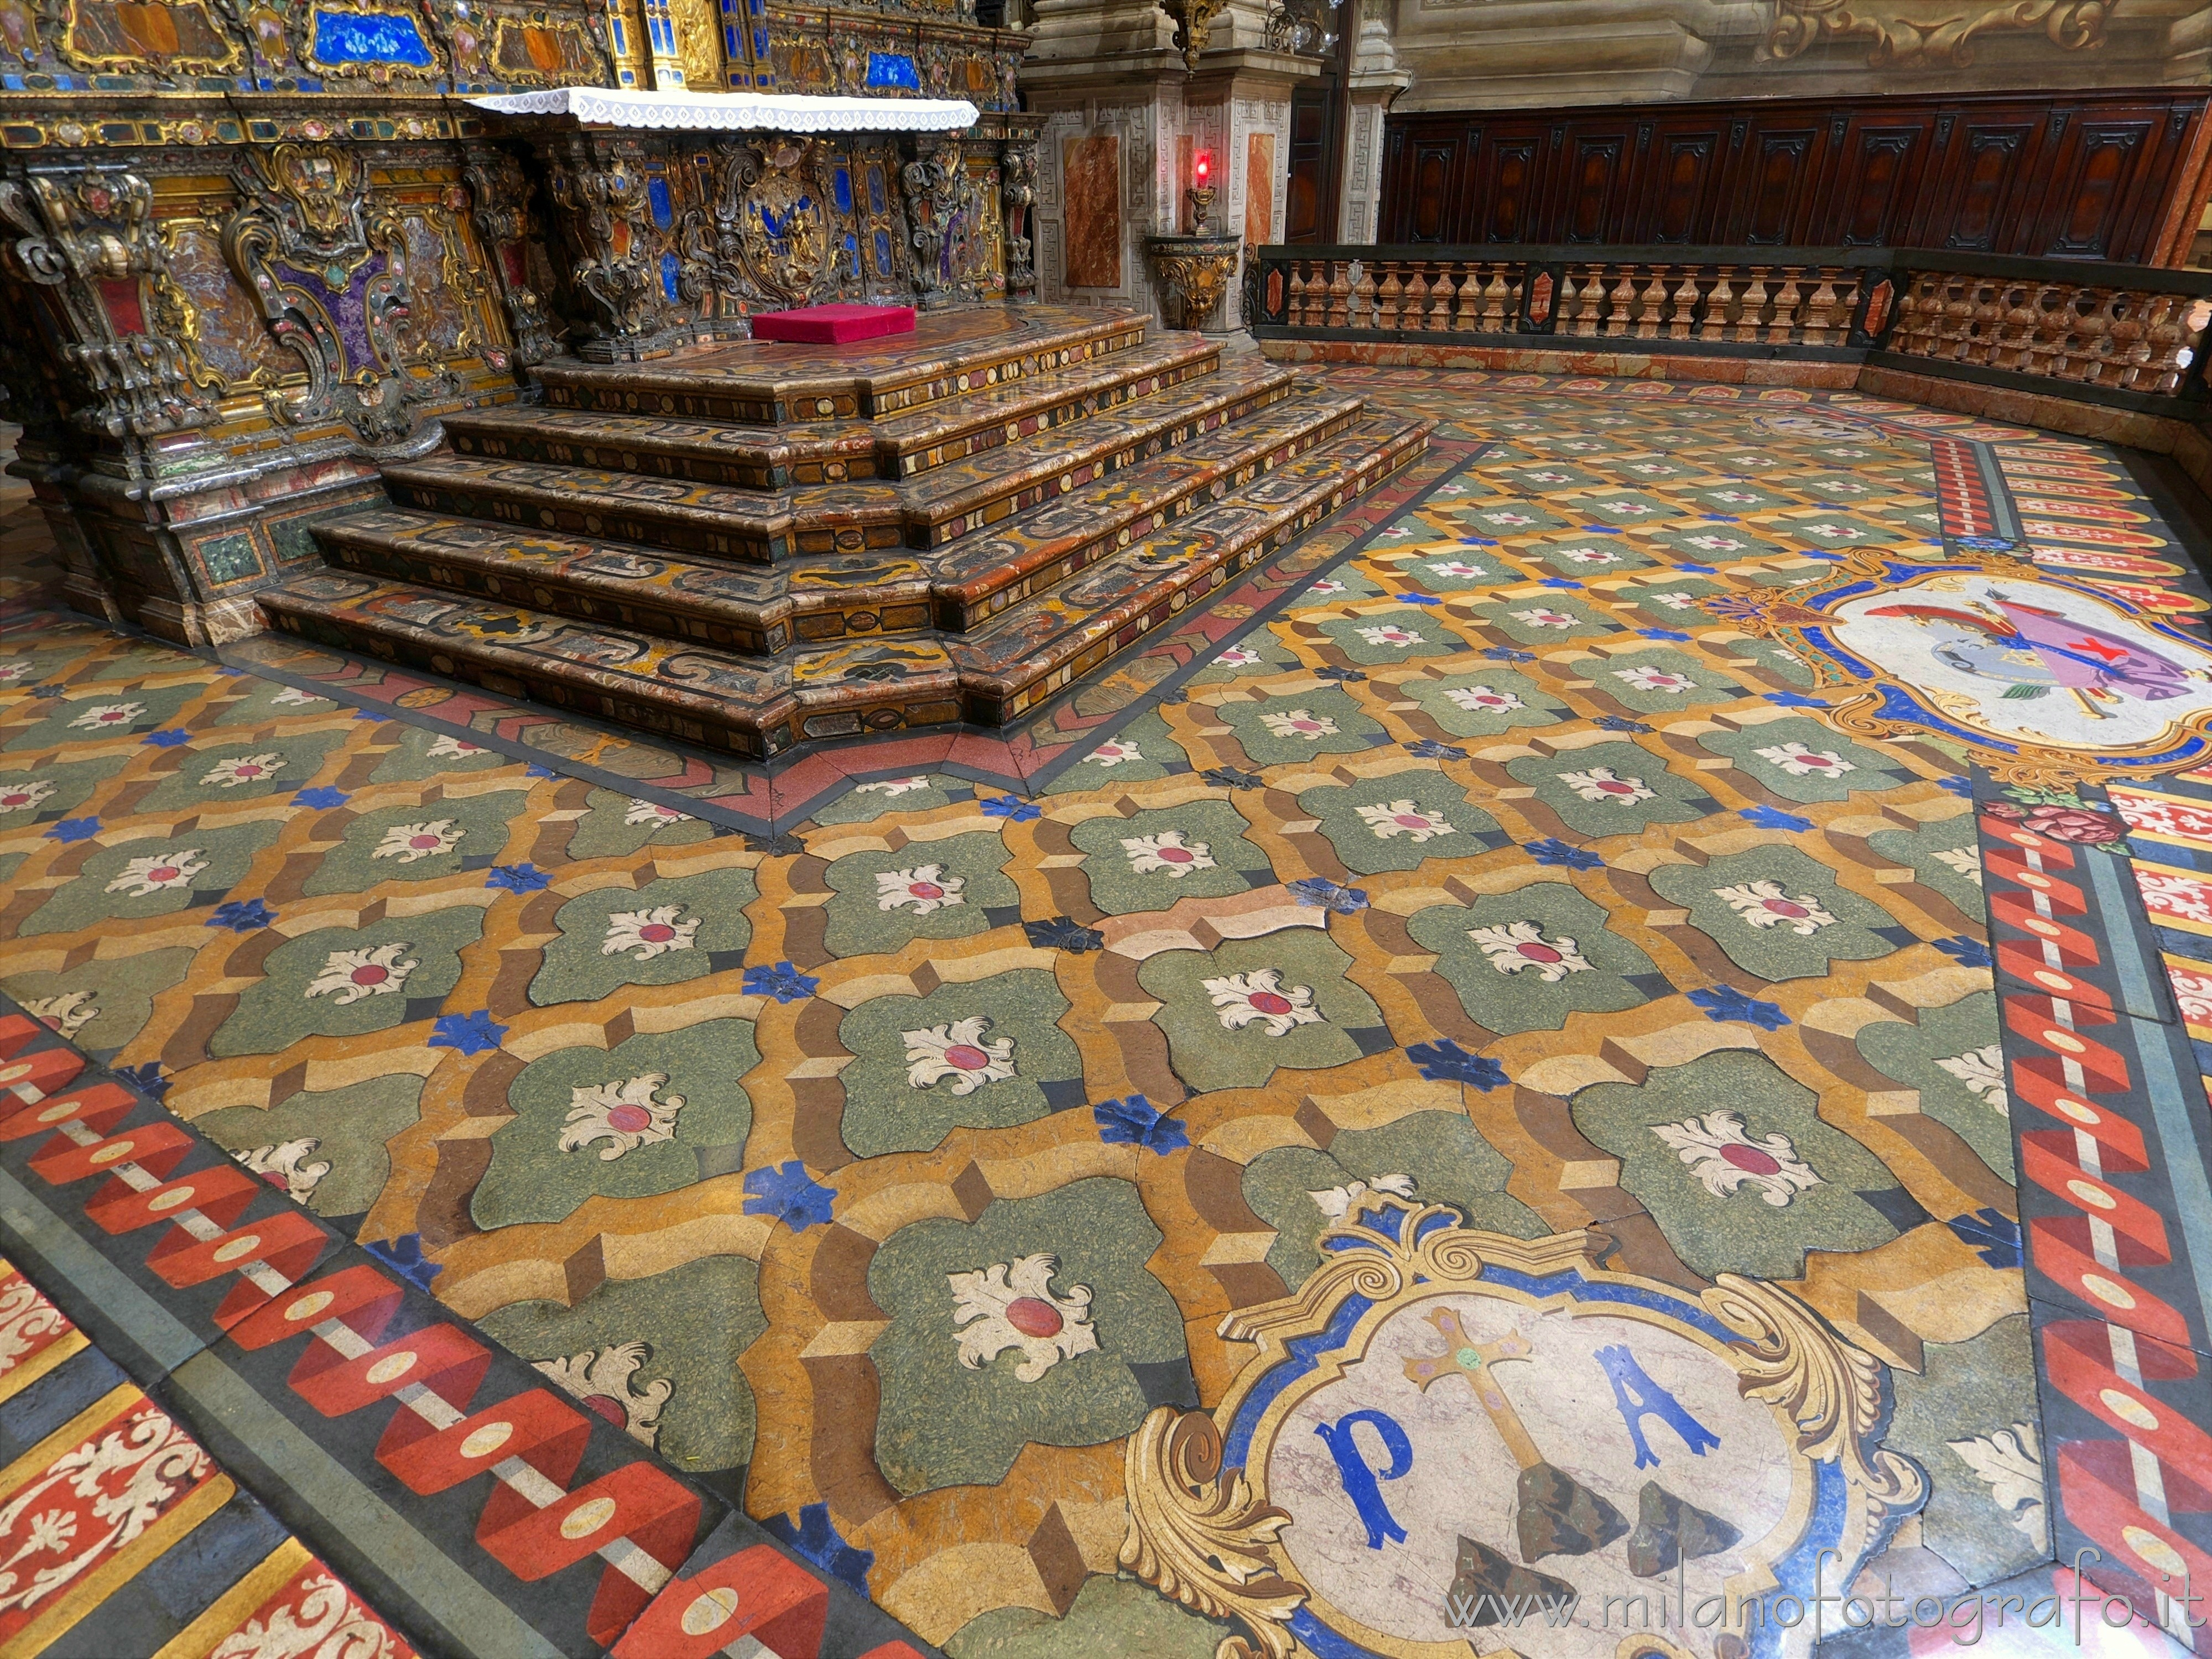 Milan (Italy): Scagliola floor of the presbytery of the Church of Sant'Alessandro in Zebedia - Milan (Italy)